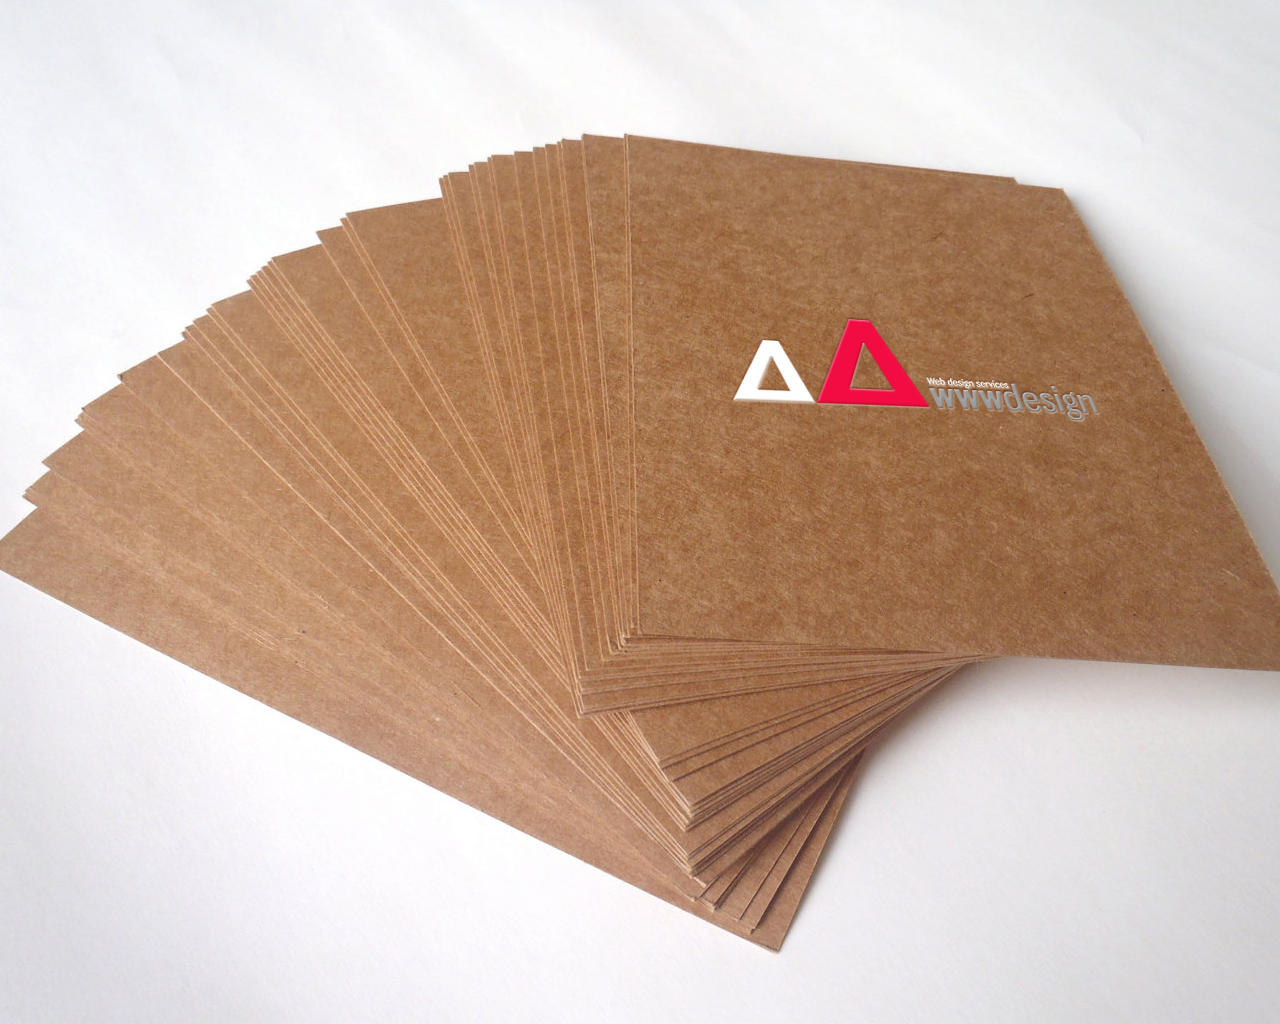 Professional business cards by armenasryan on envato studio professional business cards reheart Choice Image